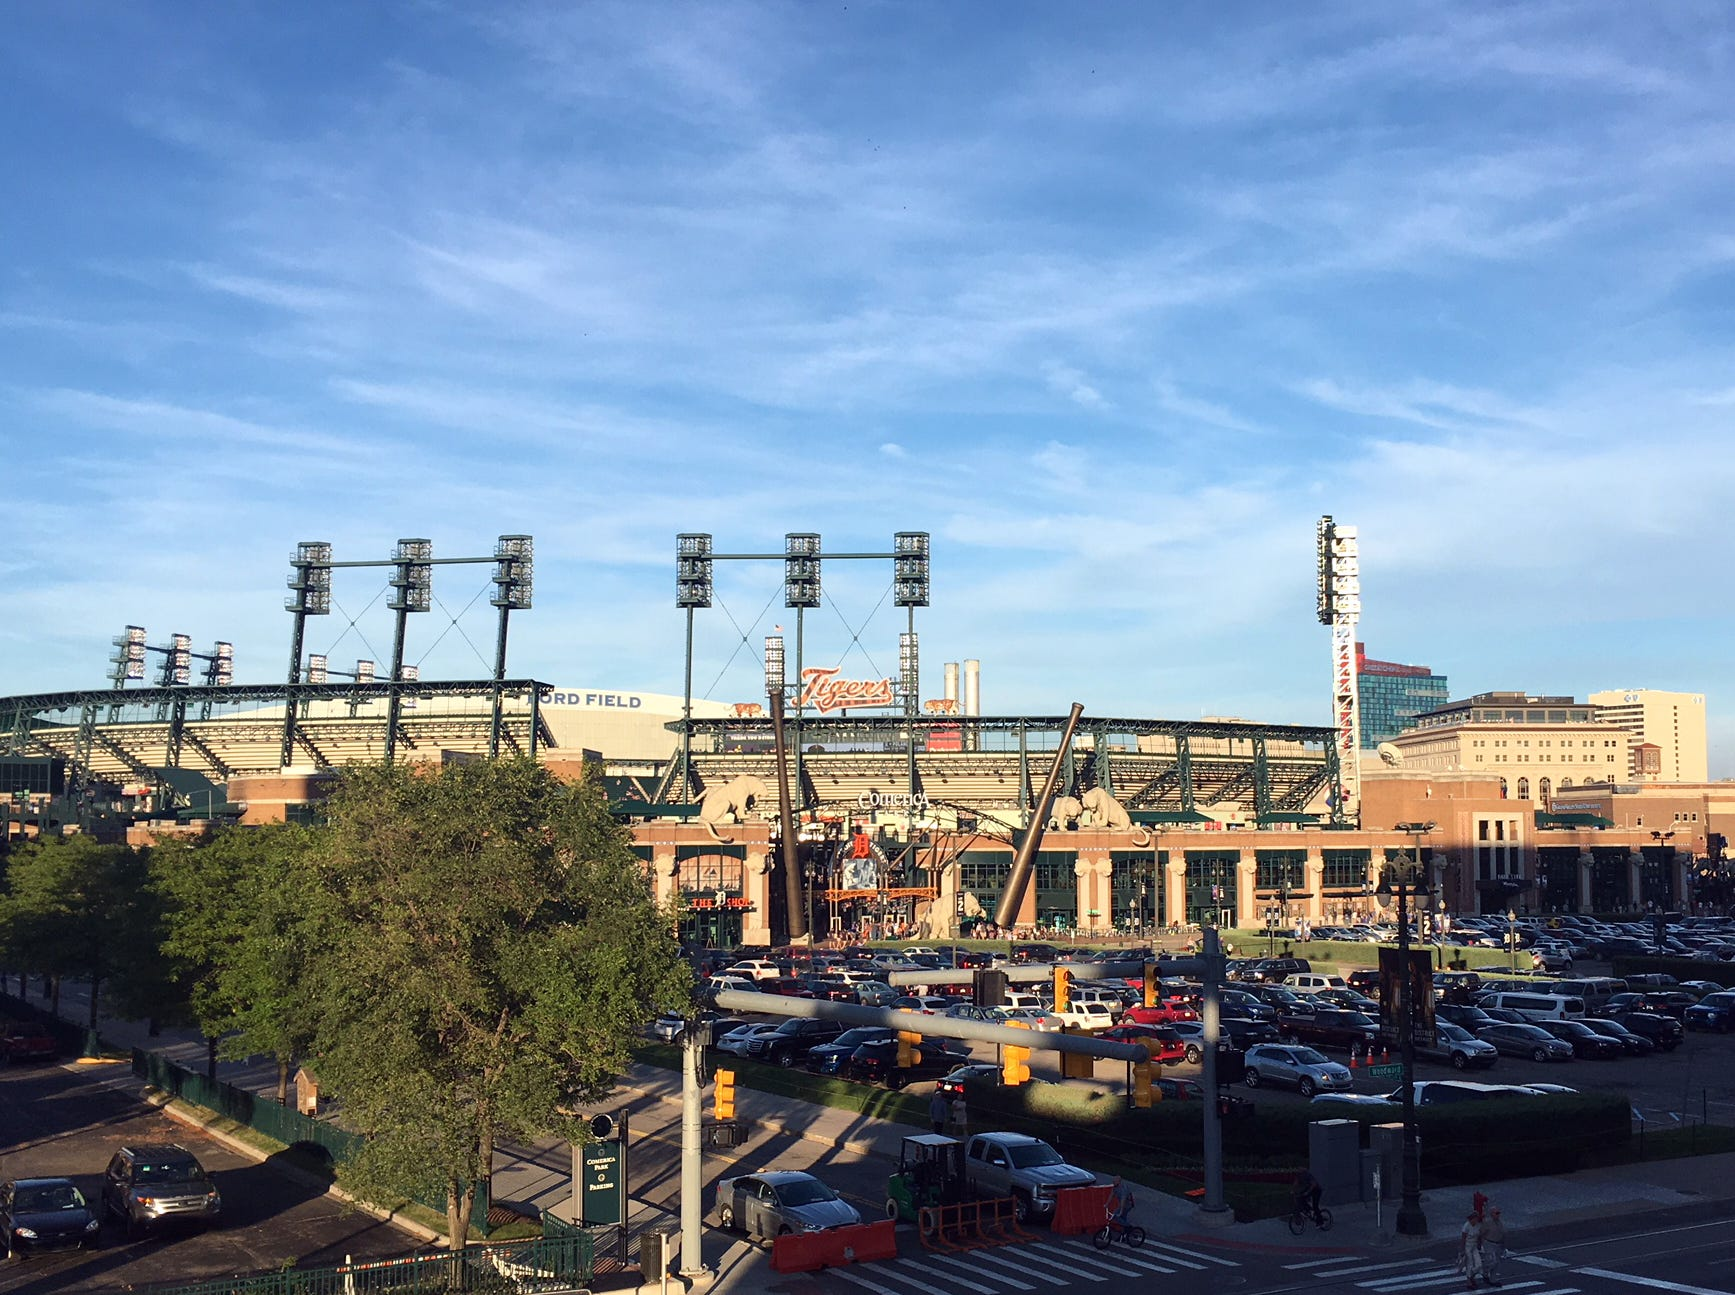 Detroit's sports district is home to the Tigers, Lions, Pistons and Red Wings.